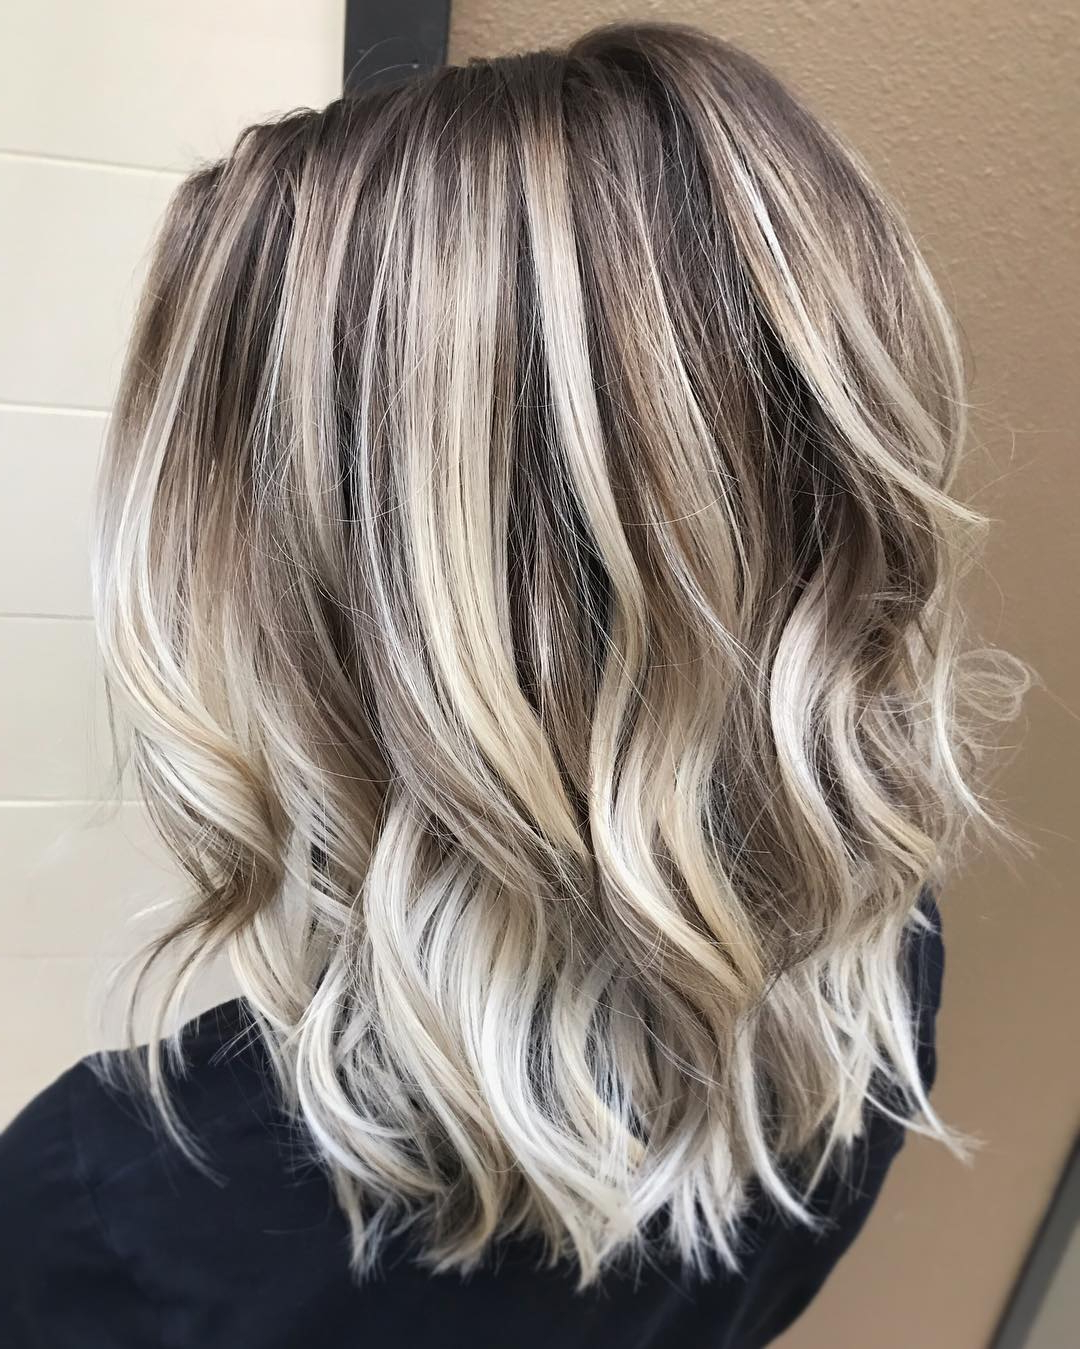 Well Liked Ash Bronde Ombre Hairstyles For 10 Ash Blonde Hairstyles For All Skin Tones (View 2 of 20)